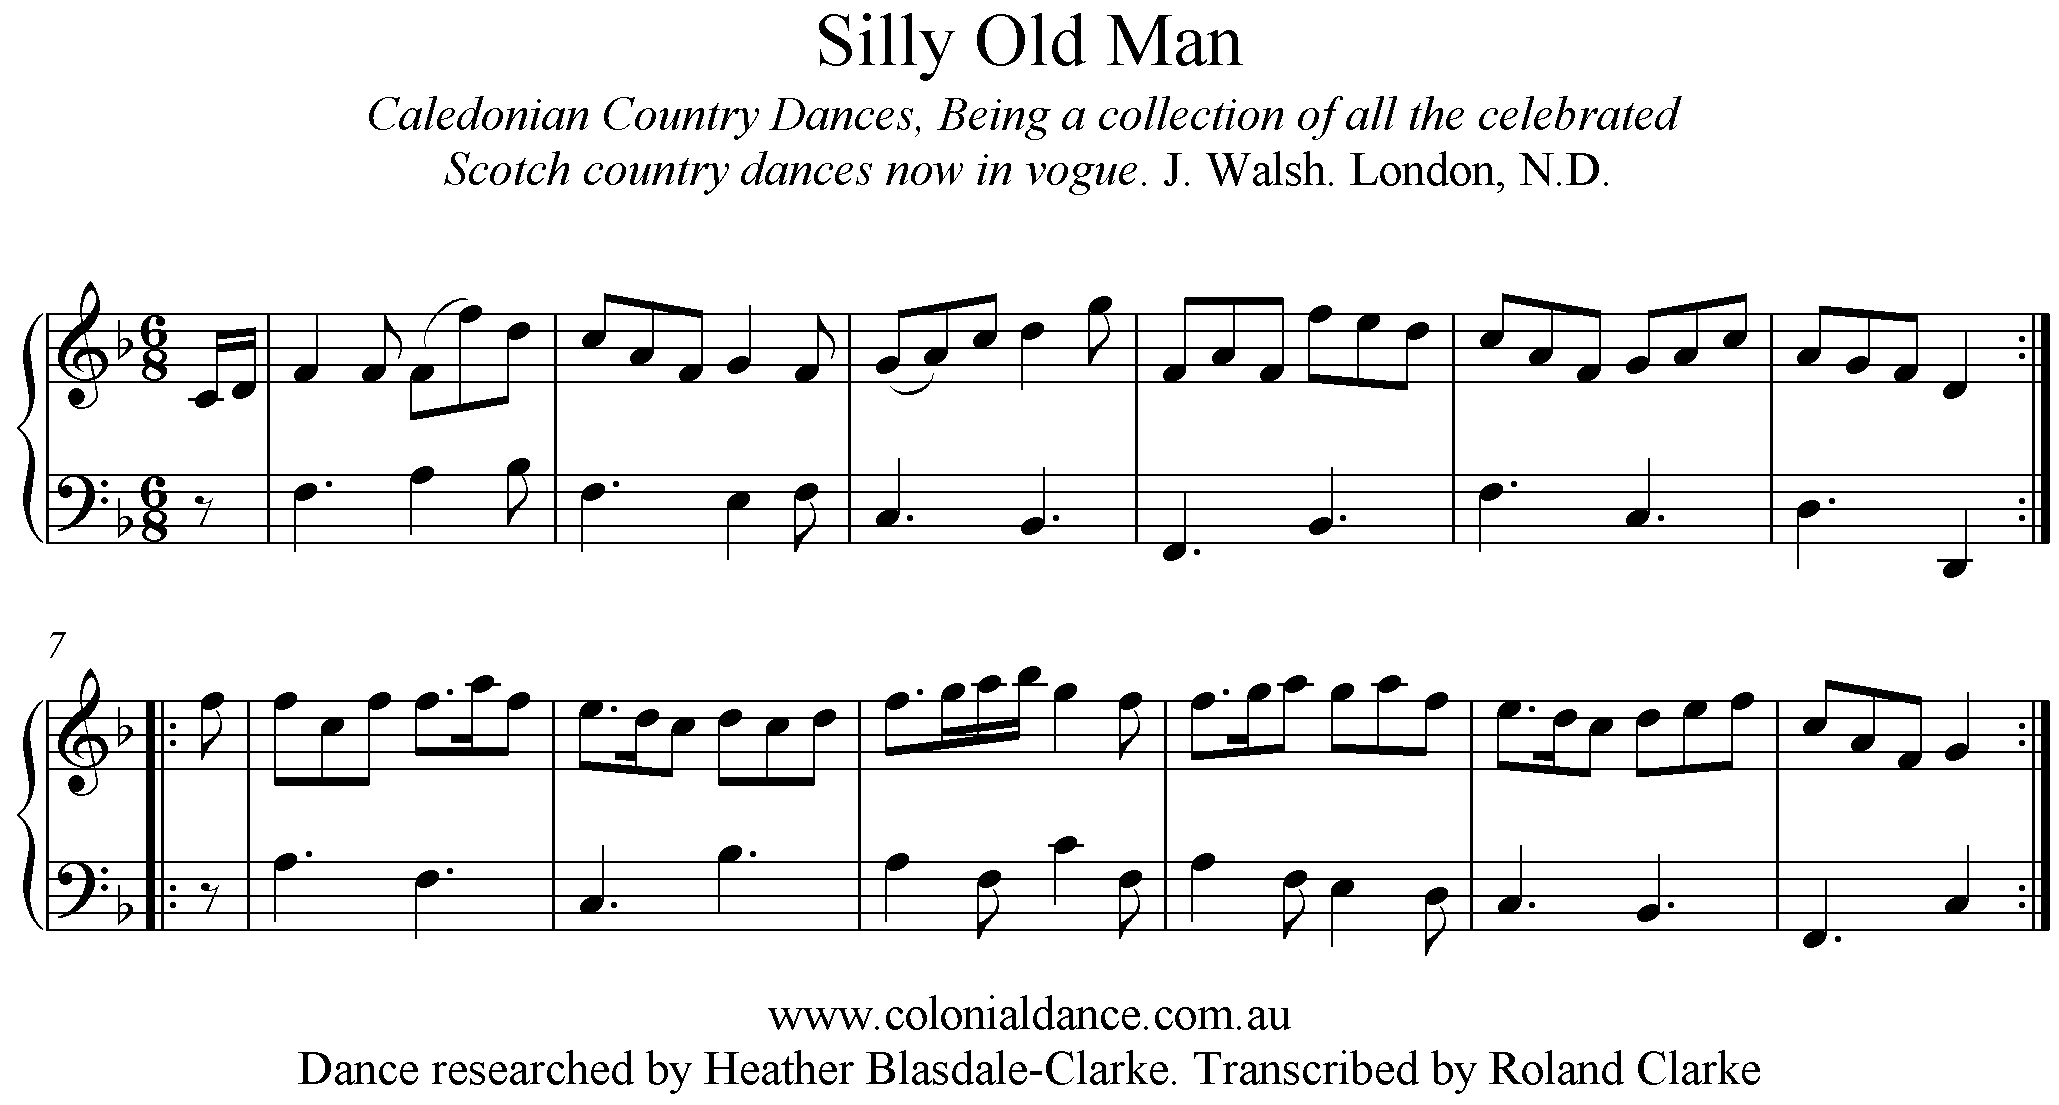 The Silly Old Man   Australian Colonial Dance